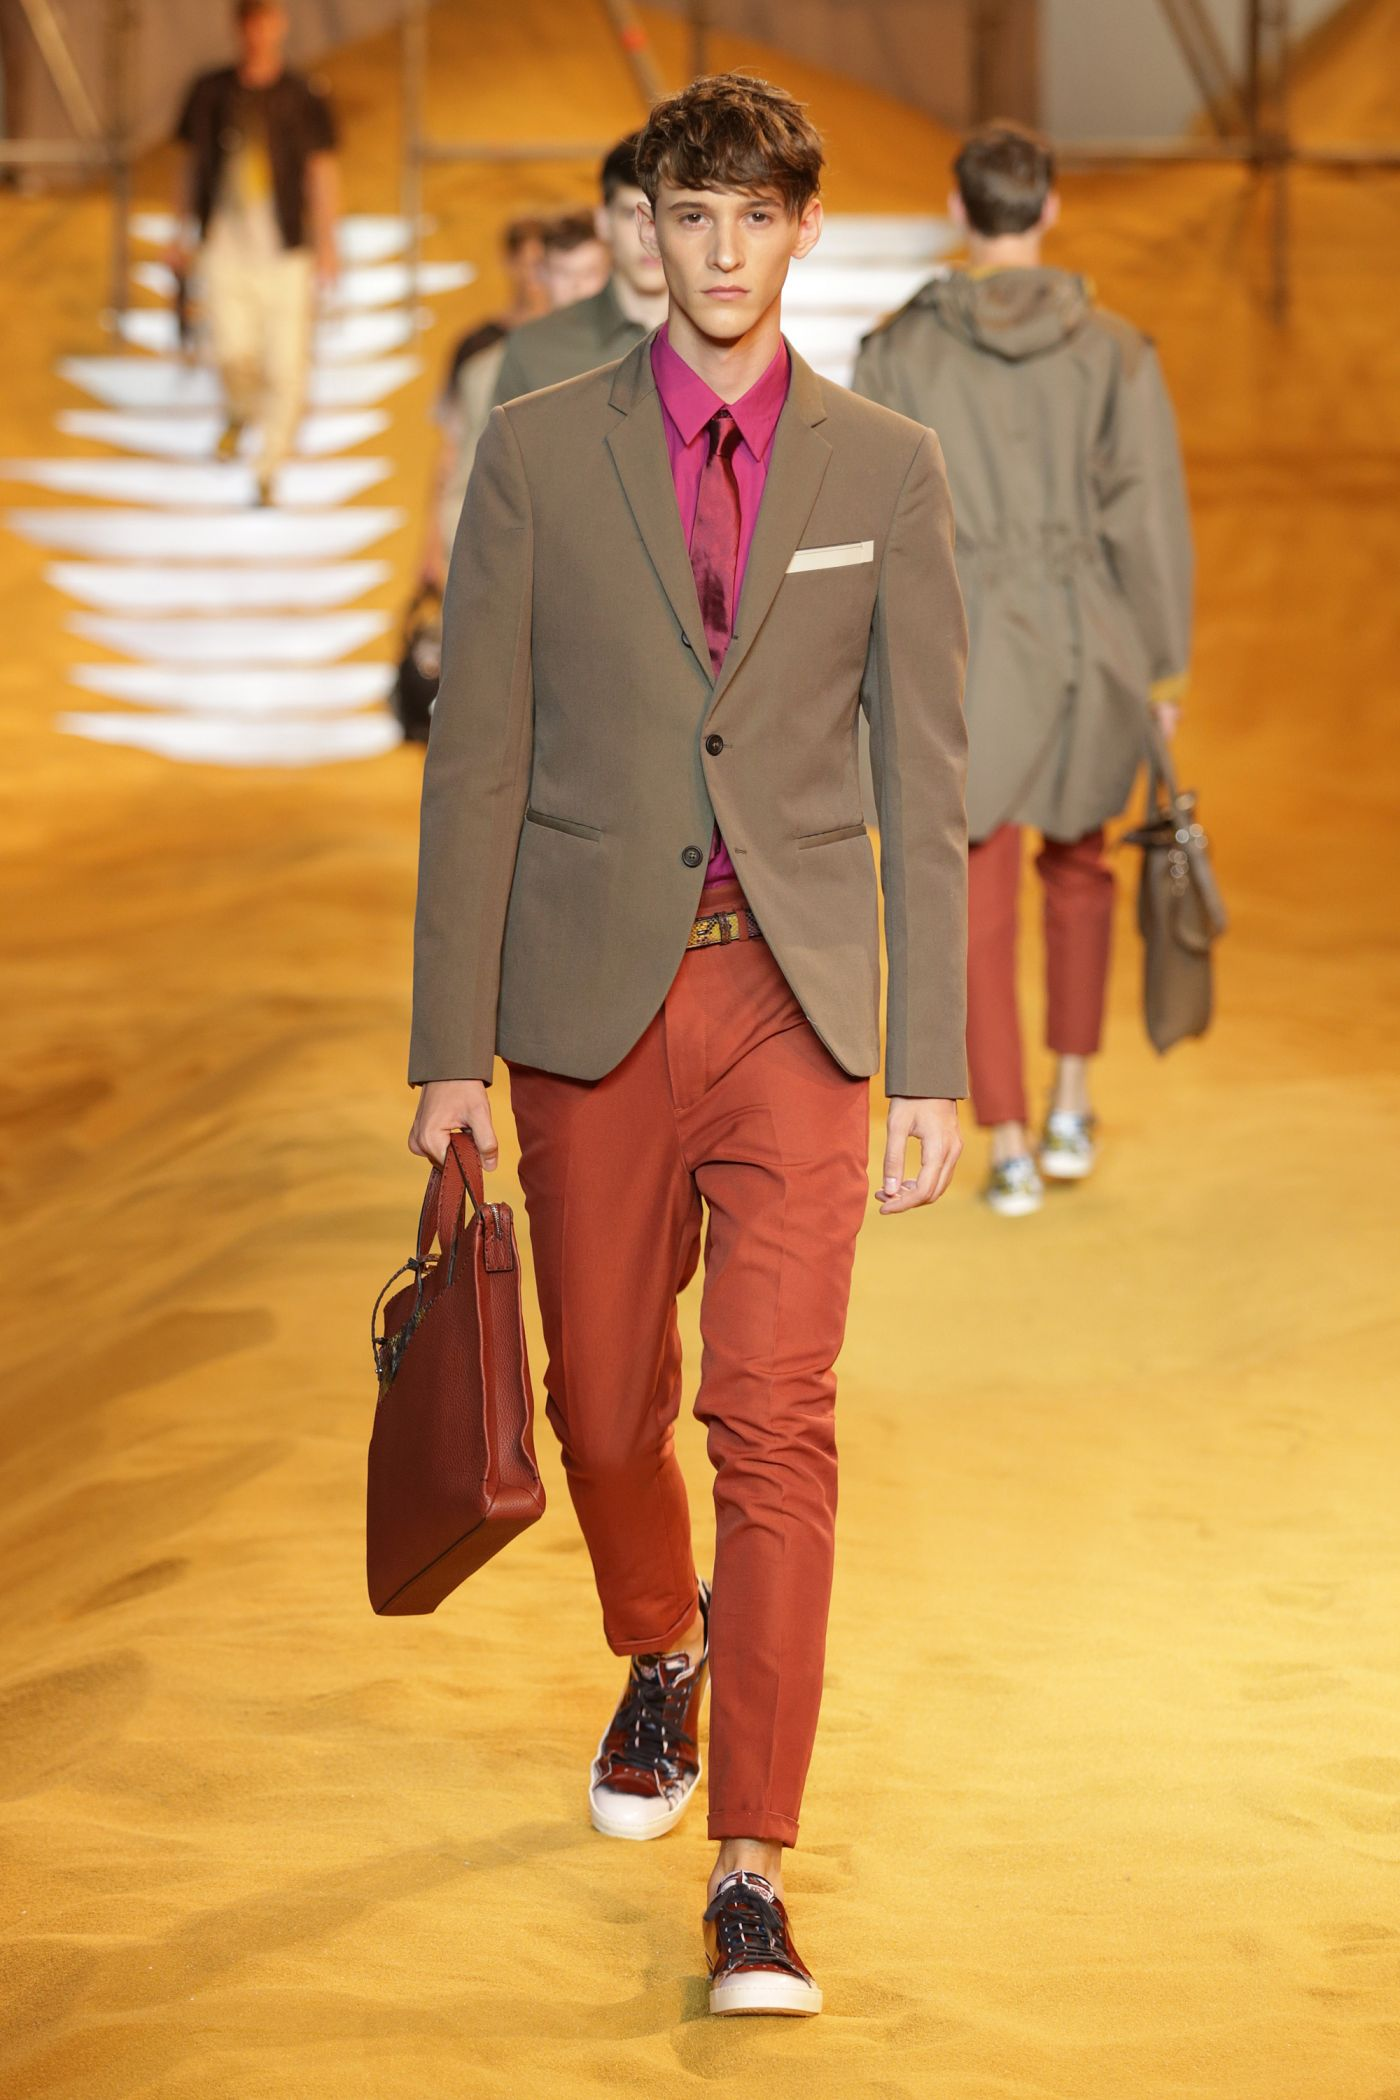 Fendi Spring/Summer '14 Menswear Collection